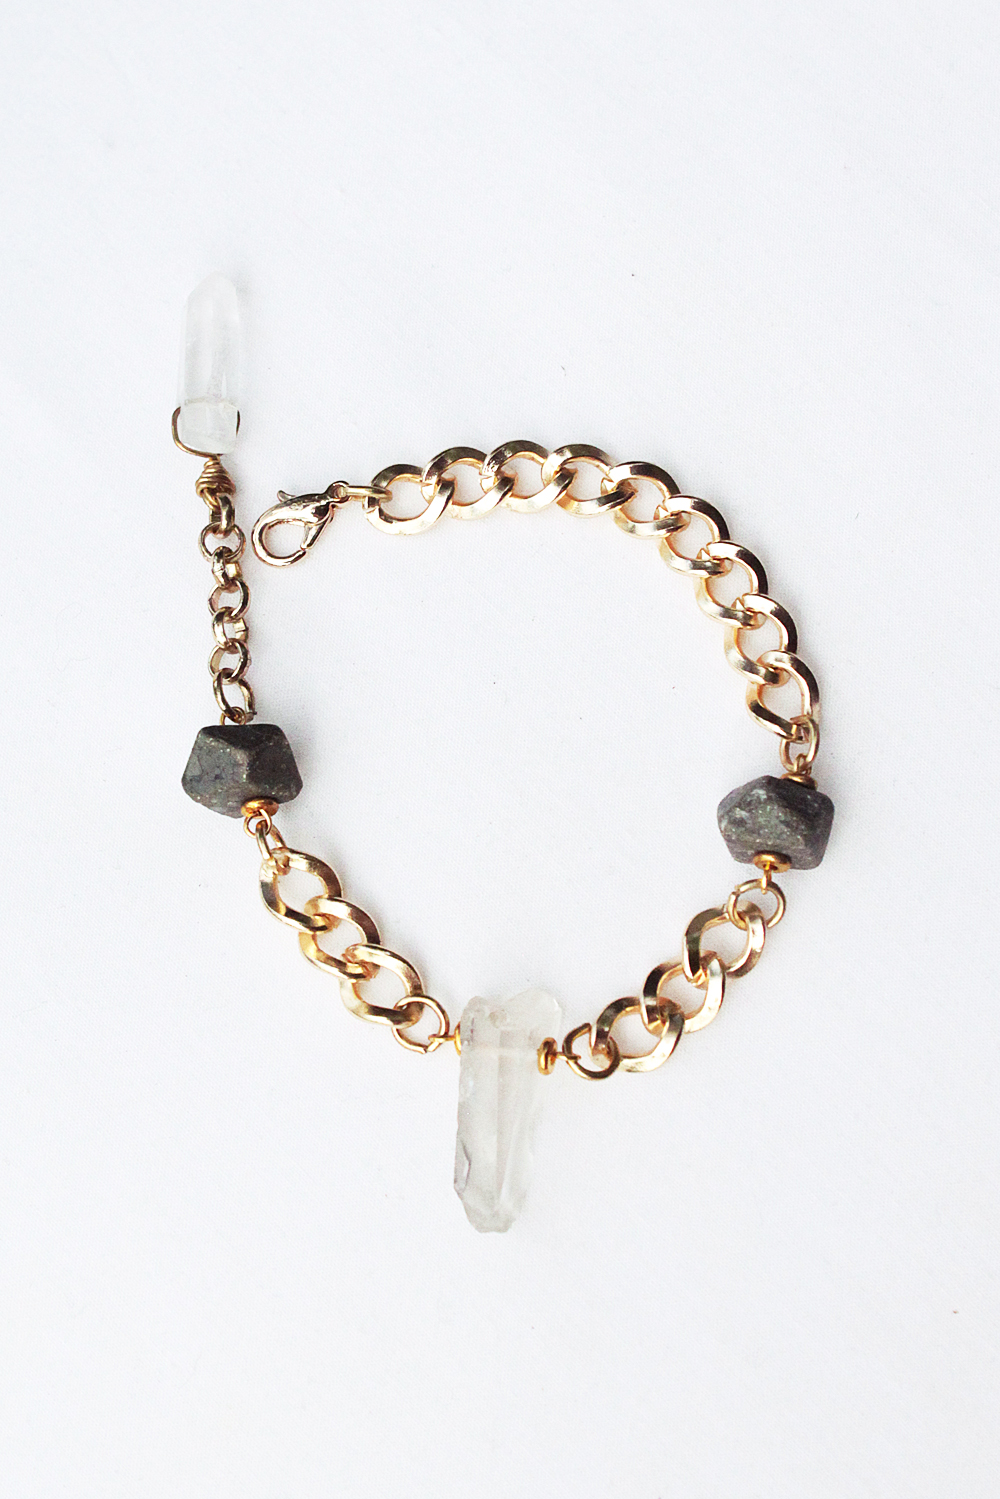 Raw quartz crystal with faceted pyrite beads